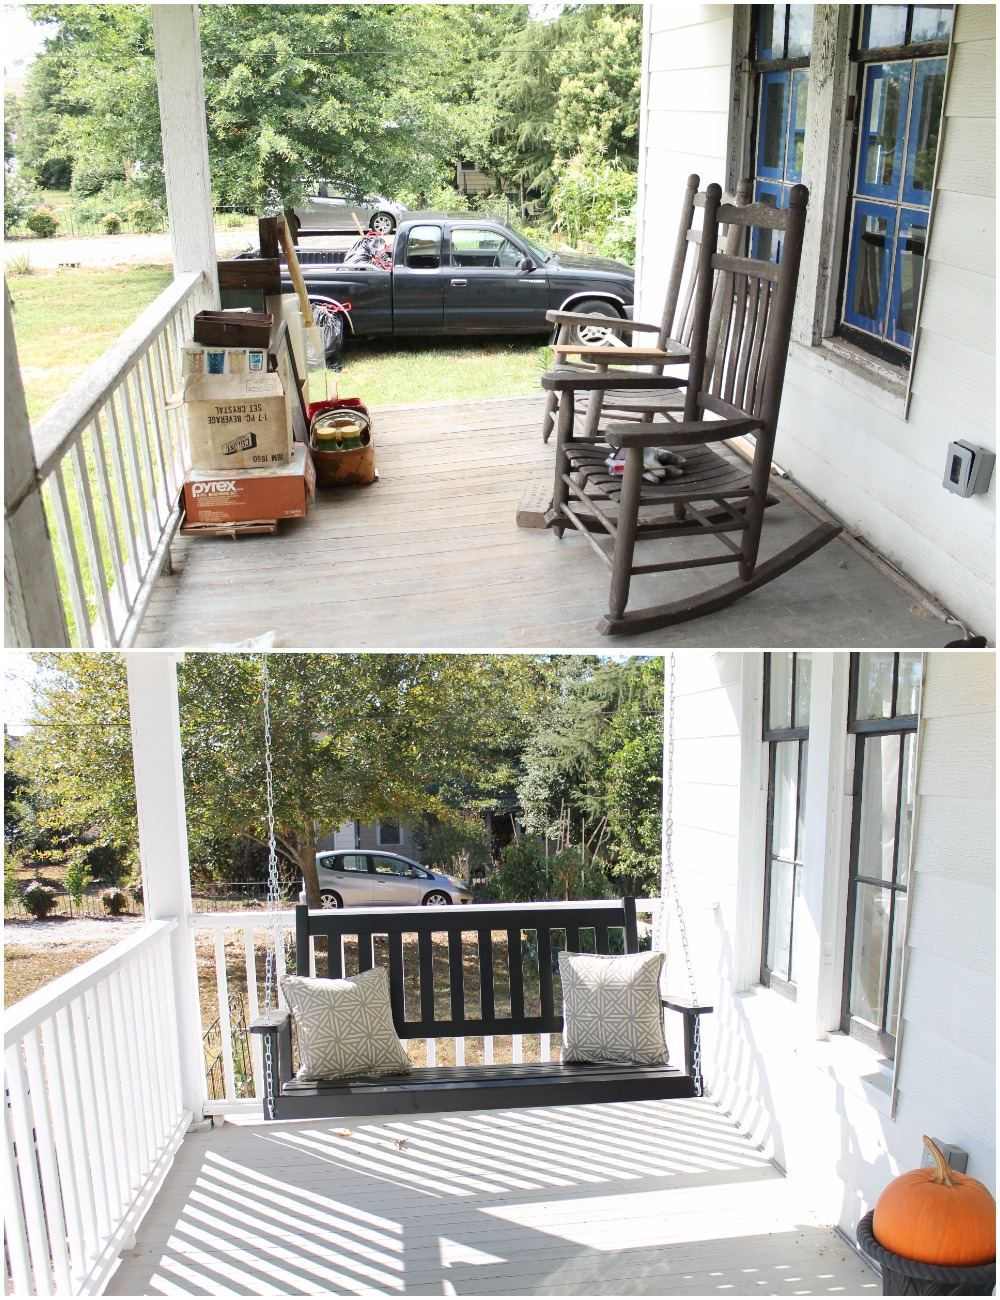 Elizabeth Burns Design  Budget-Friendly Fixer Upper Farmhouse Before and After House Flip - DIY Curb Appeal White Farm House Cottage with Black Windows and Wide Front Steps to Front Porch - Wythe Blue .jpg